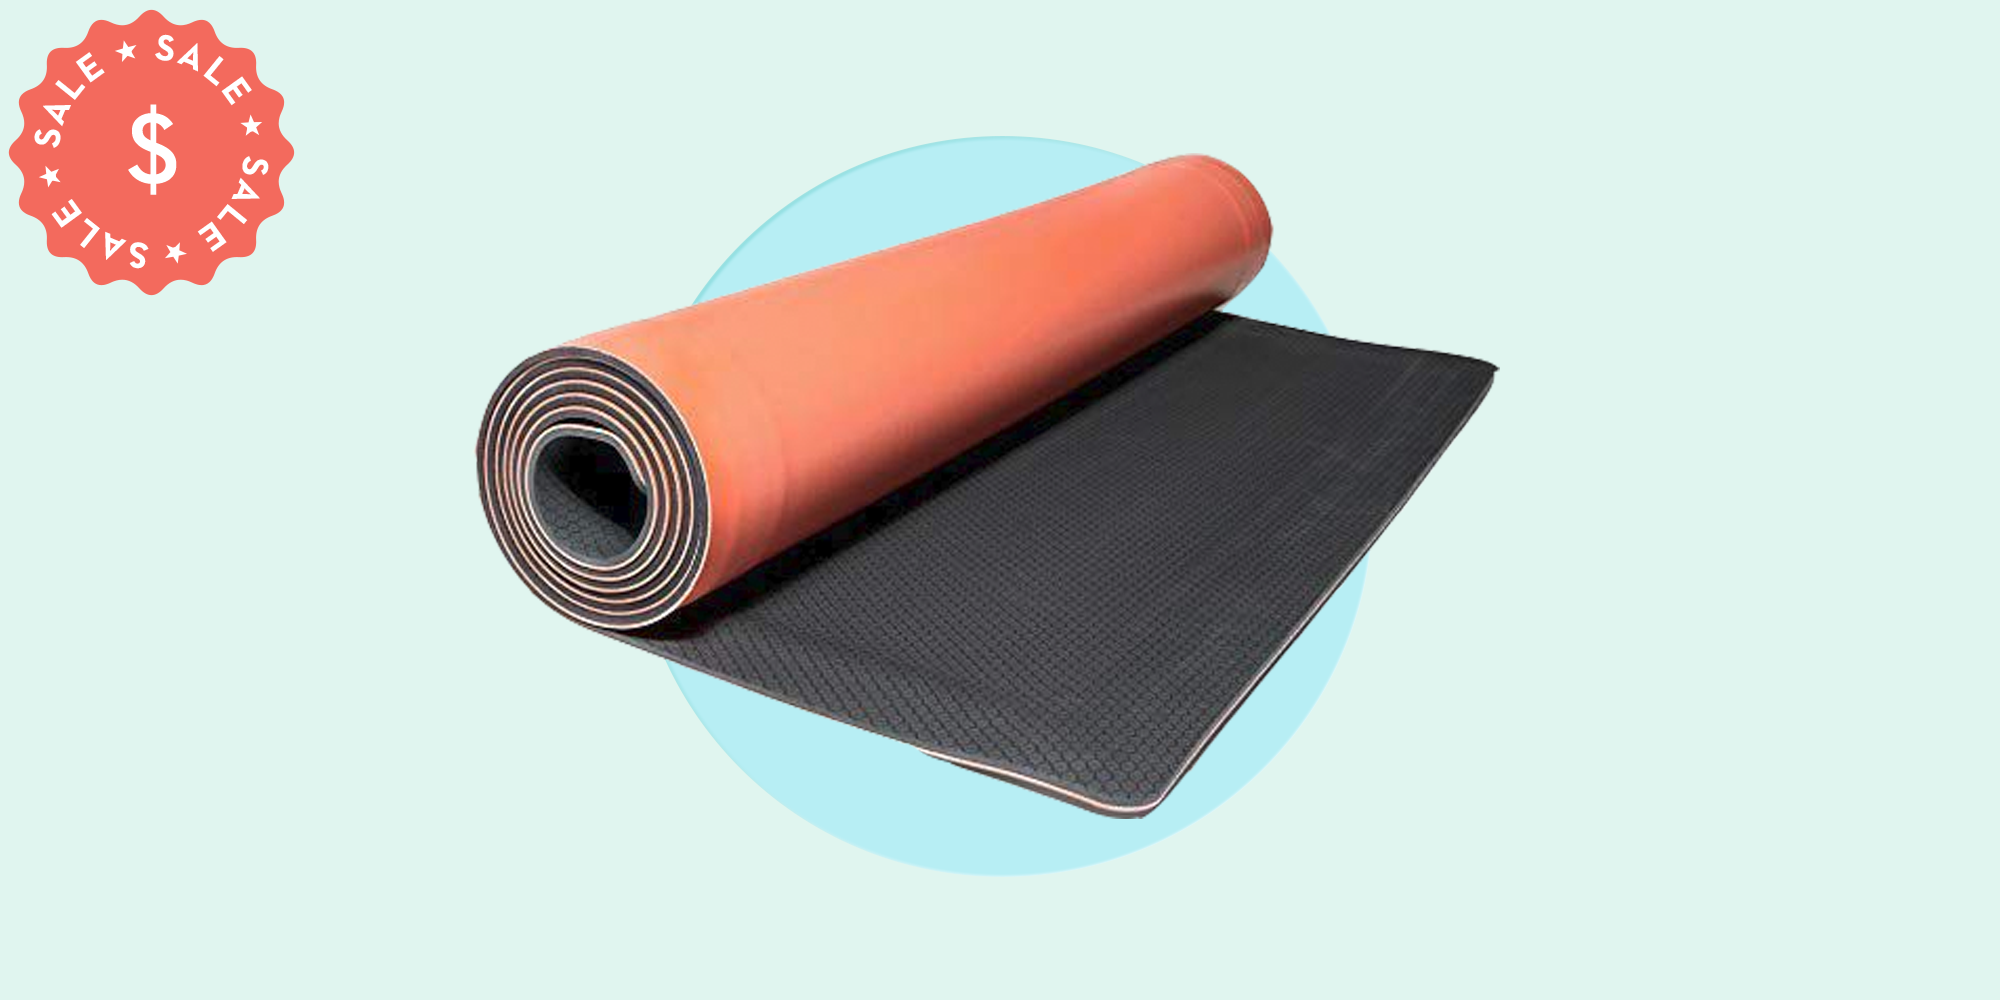 The Backslash Self Rolling Yoga Mat Is 22 Off For Prime Day